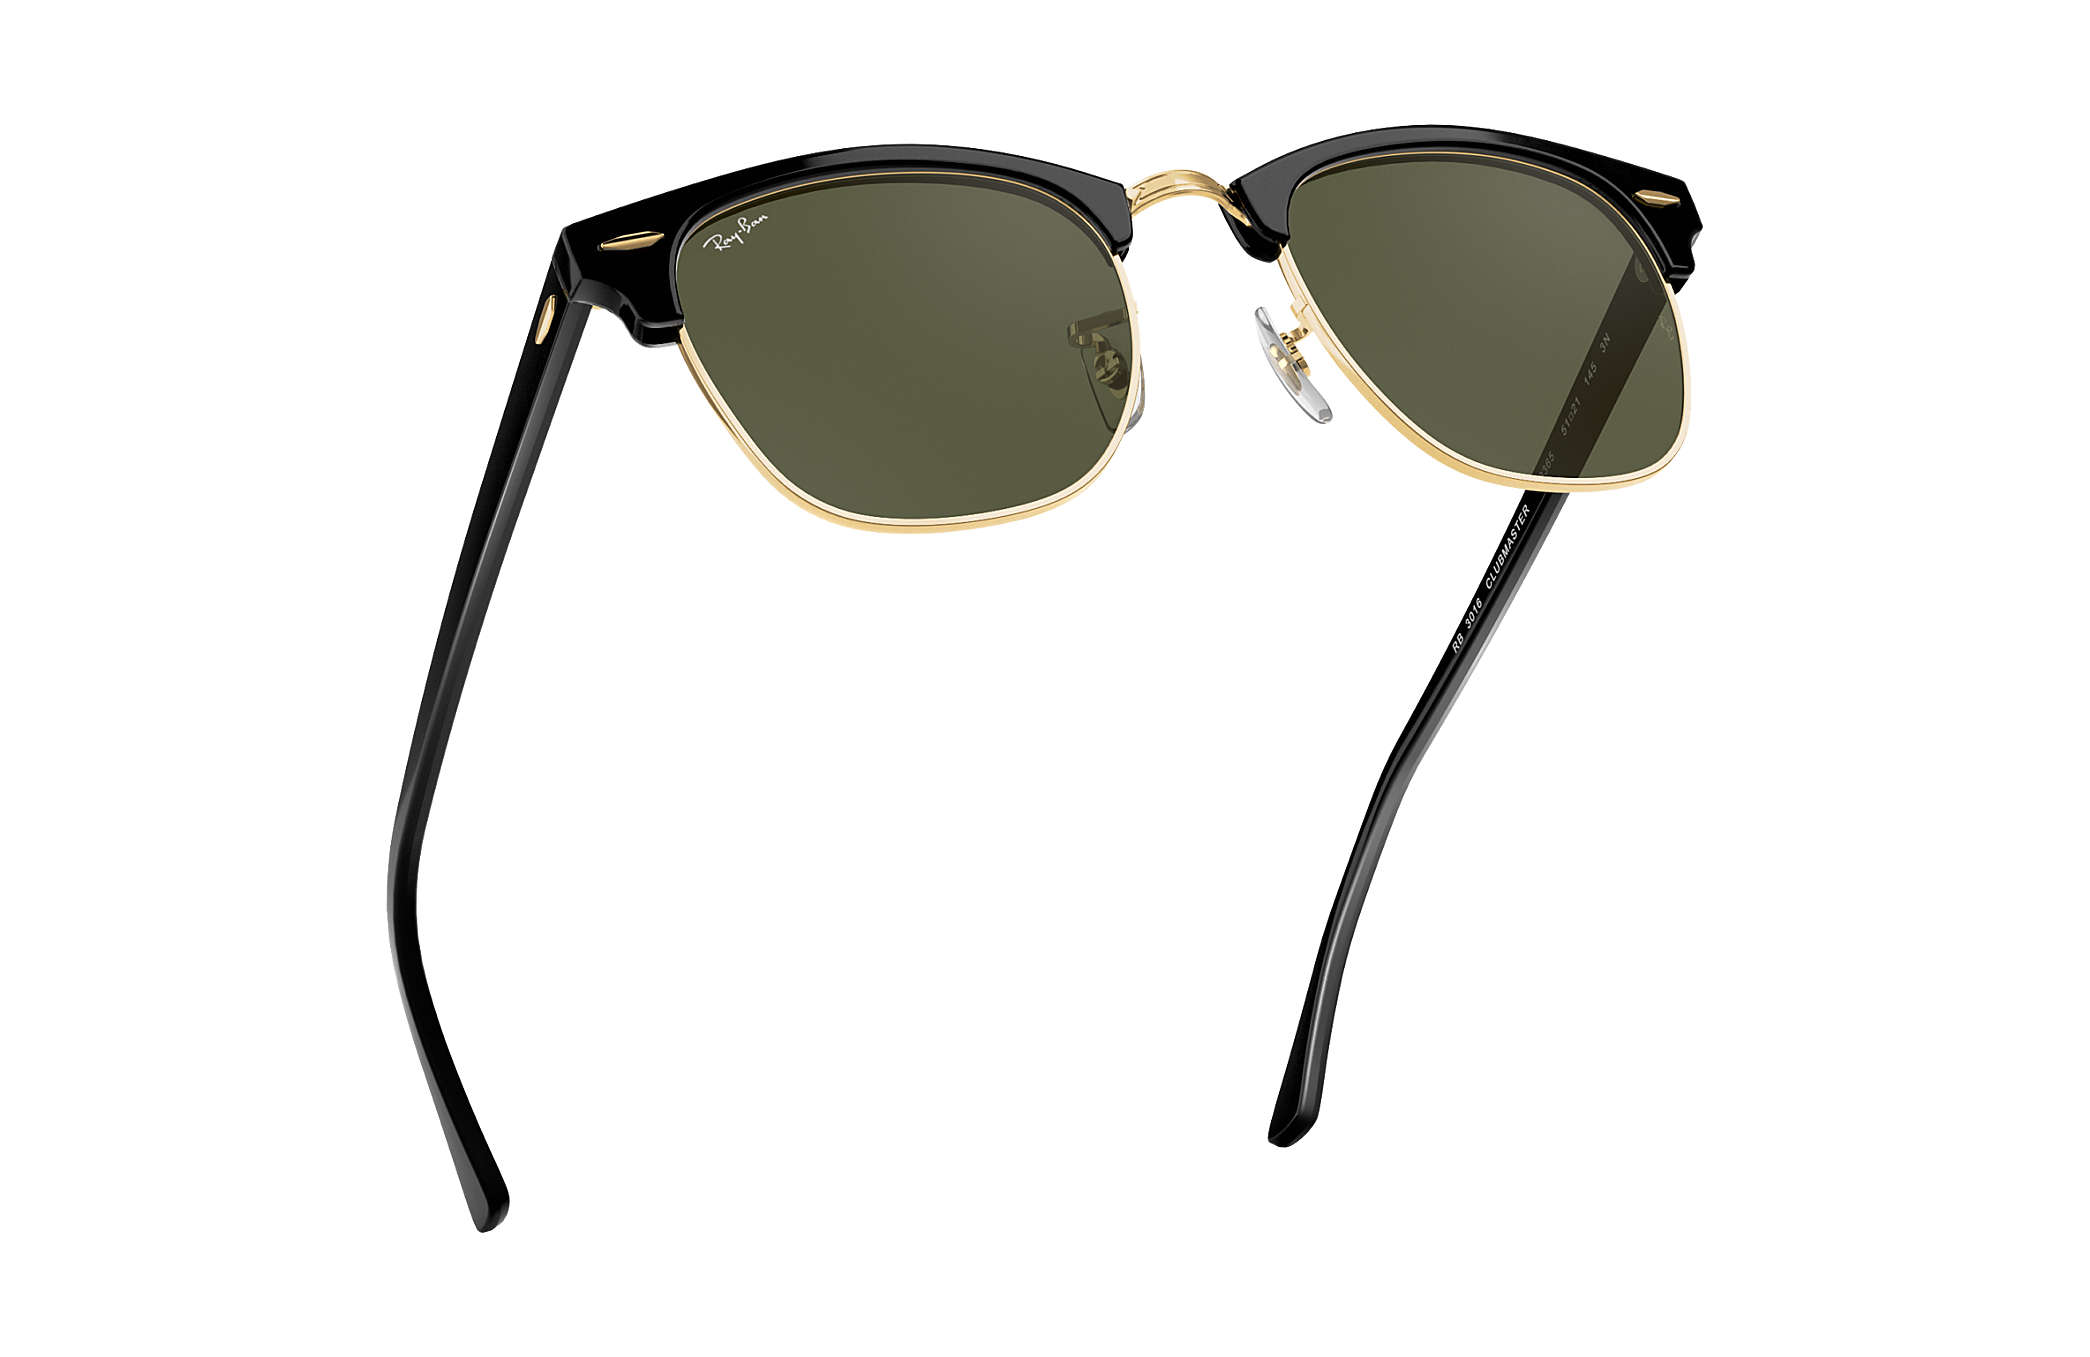 cf21143a32 Ray-Ban Clubmaster Classic RB3016 Negro - Acetato - Lentes Verde ...